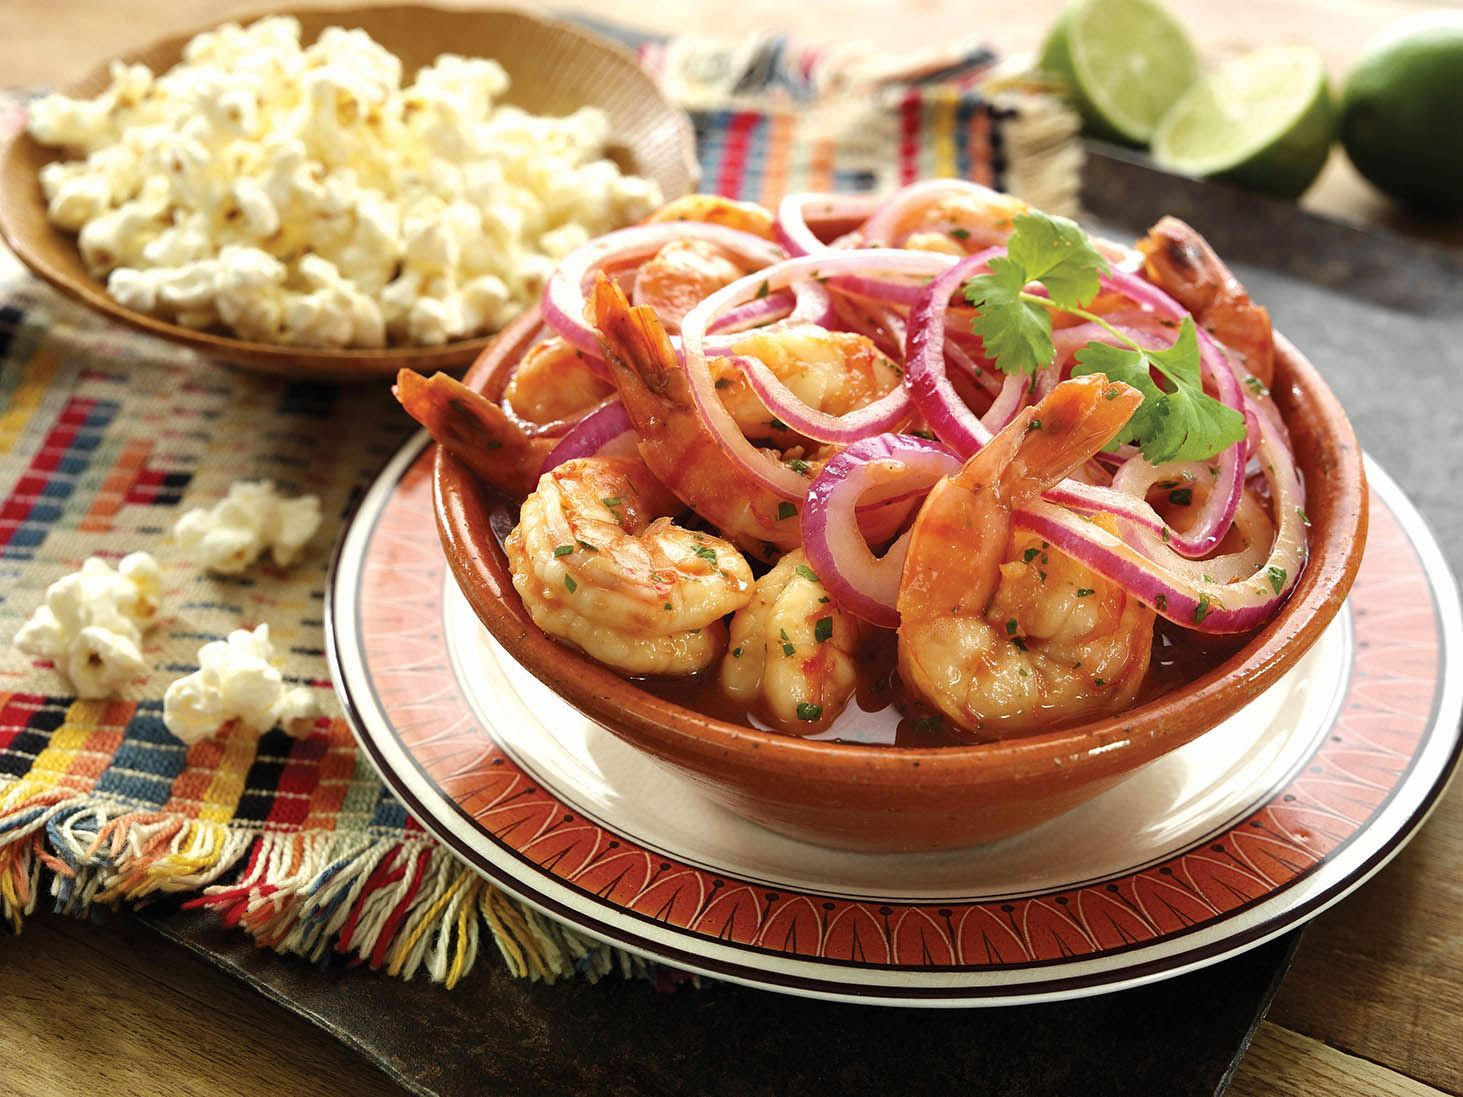 Shrimp Ceviche from Ecuador